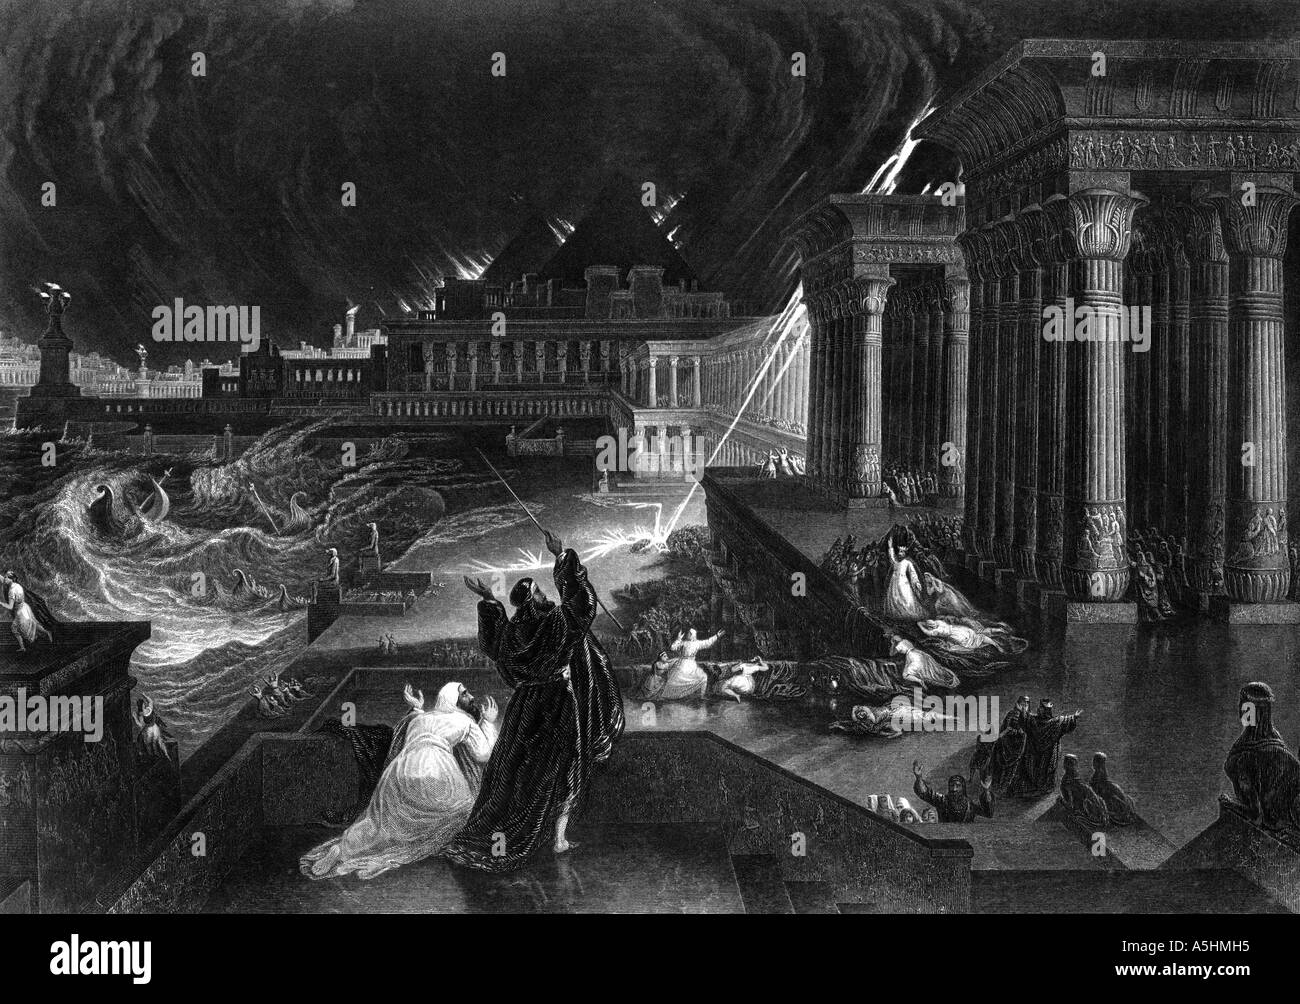 The Seventh Plague, Exodus Chapter 9 Verse 23 Engraving - Stock Image